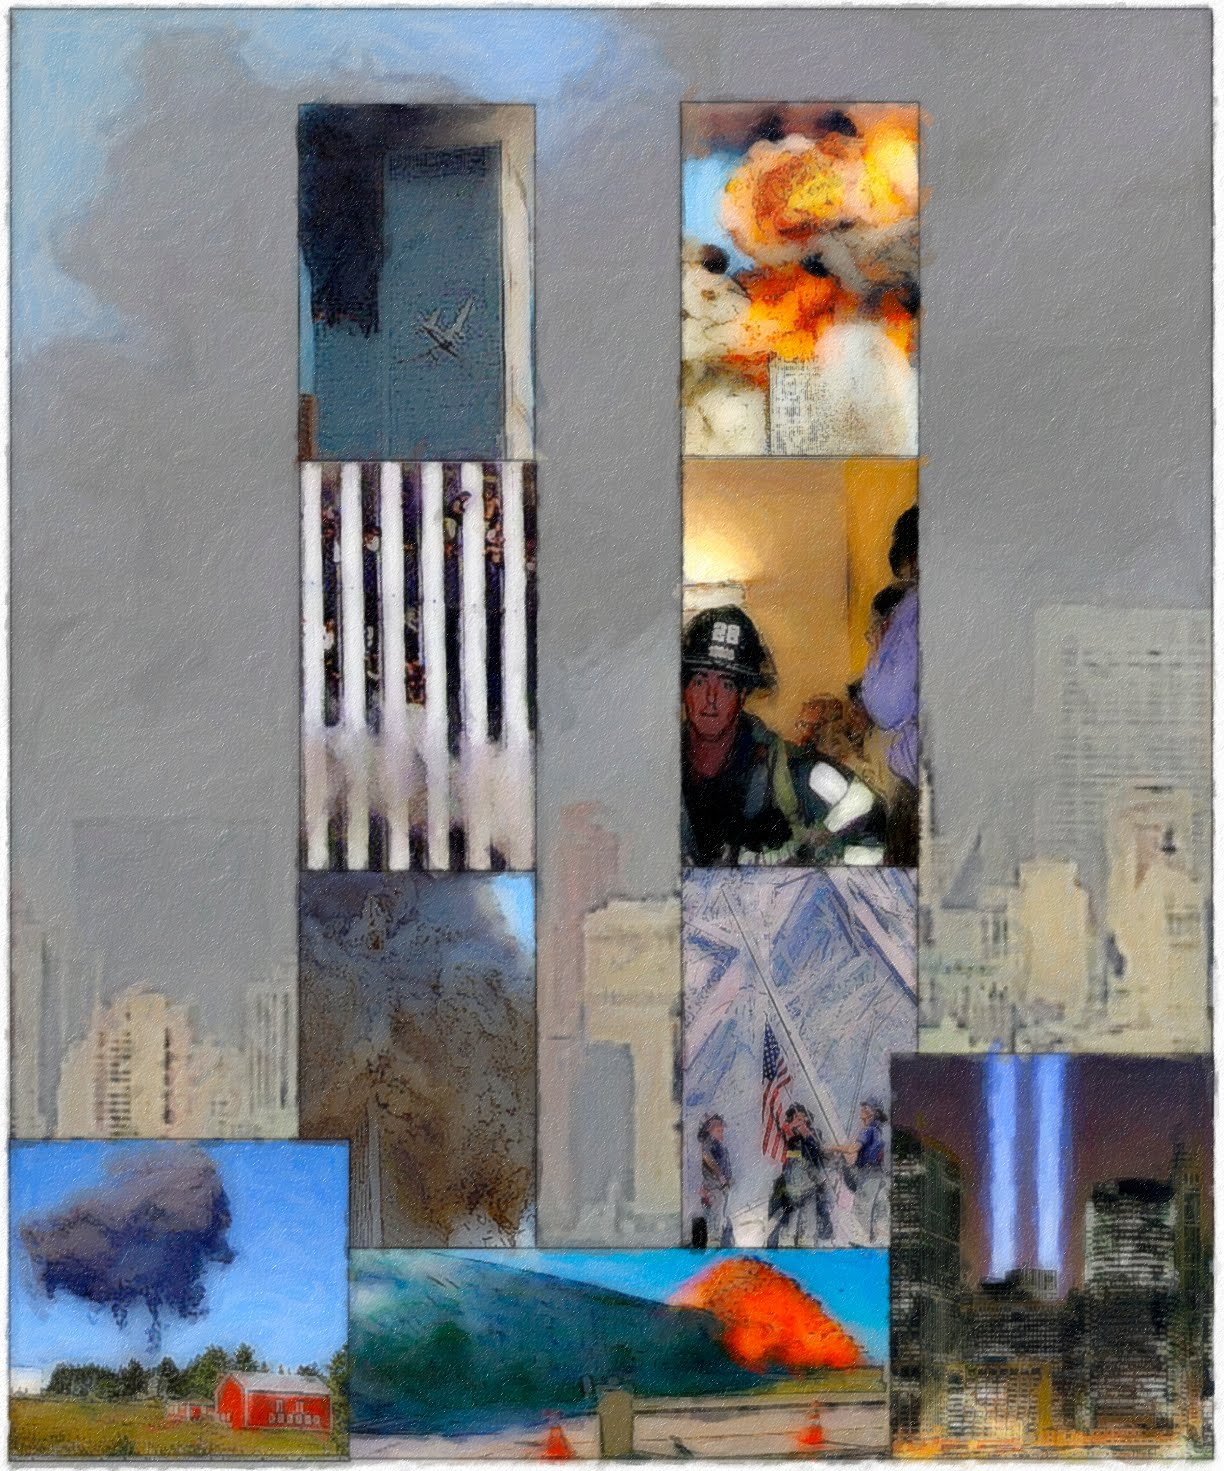 Hope n' Change Cartoons commemorates the 10th anniversary of the 9/11 attacks, hope and change, hopenchange, stilton jarlsberg, tea party